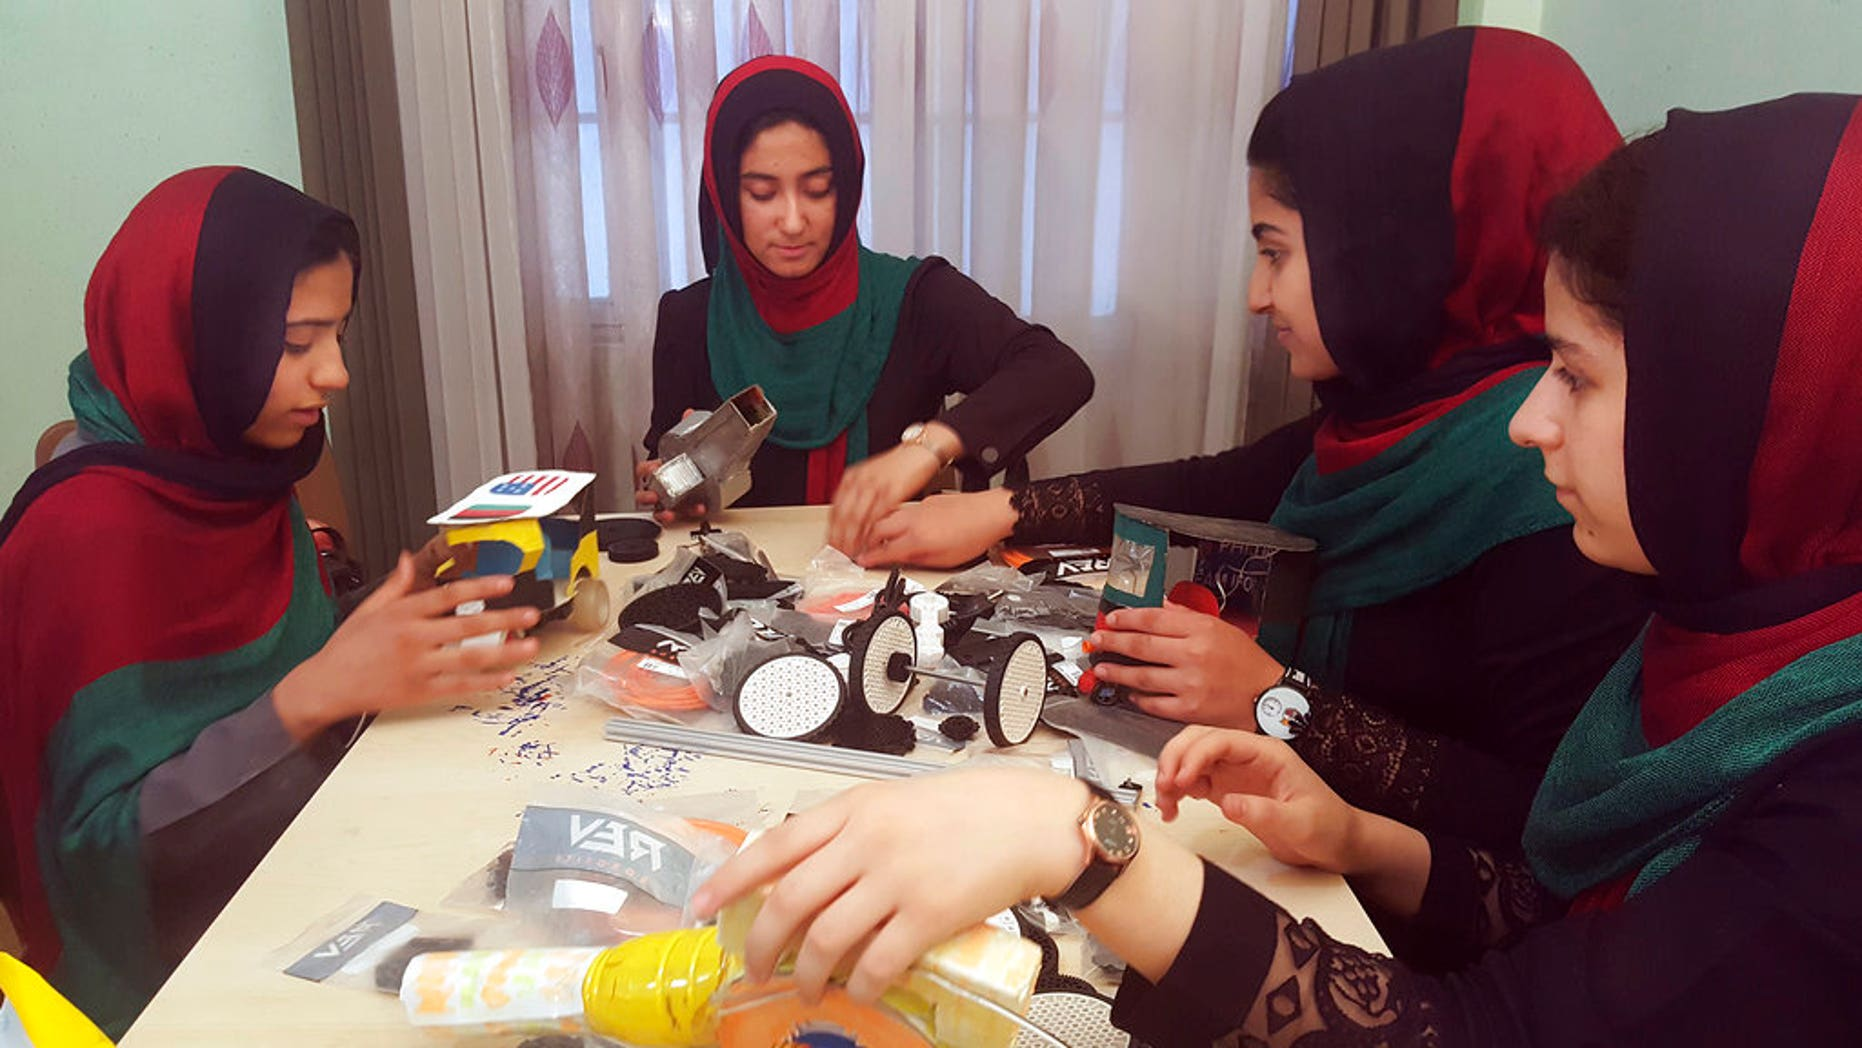 A group of six Afghan girls will be able to attend a robotics competition in Washington, D.C. next week after President Trump intervened.